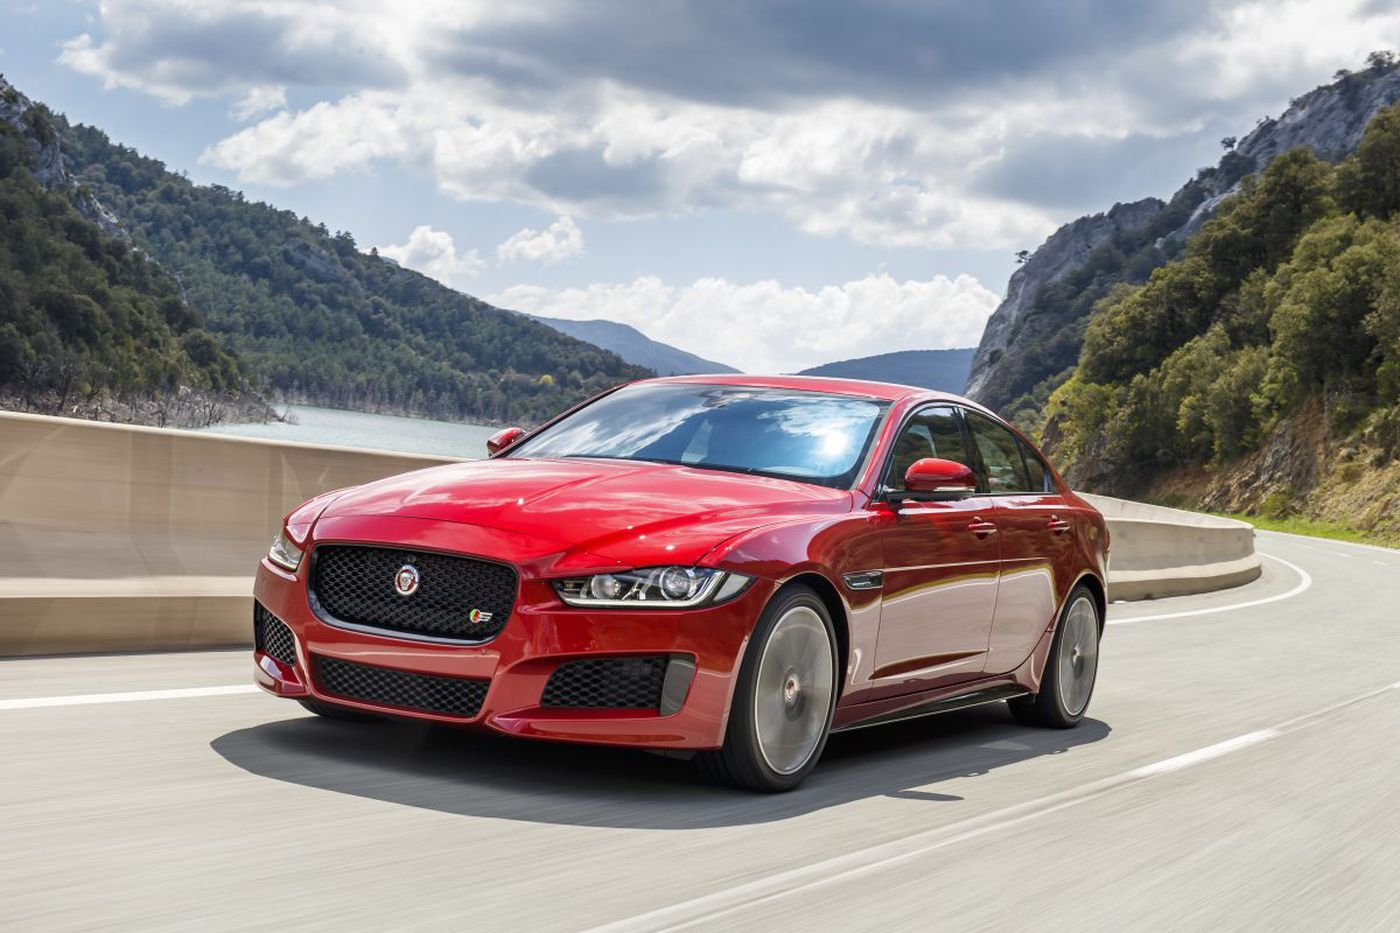 2017 Jaguar XE 20d RWD offers a delightful, fairly inexpensive ride